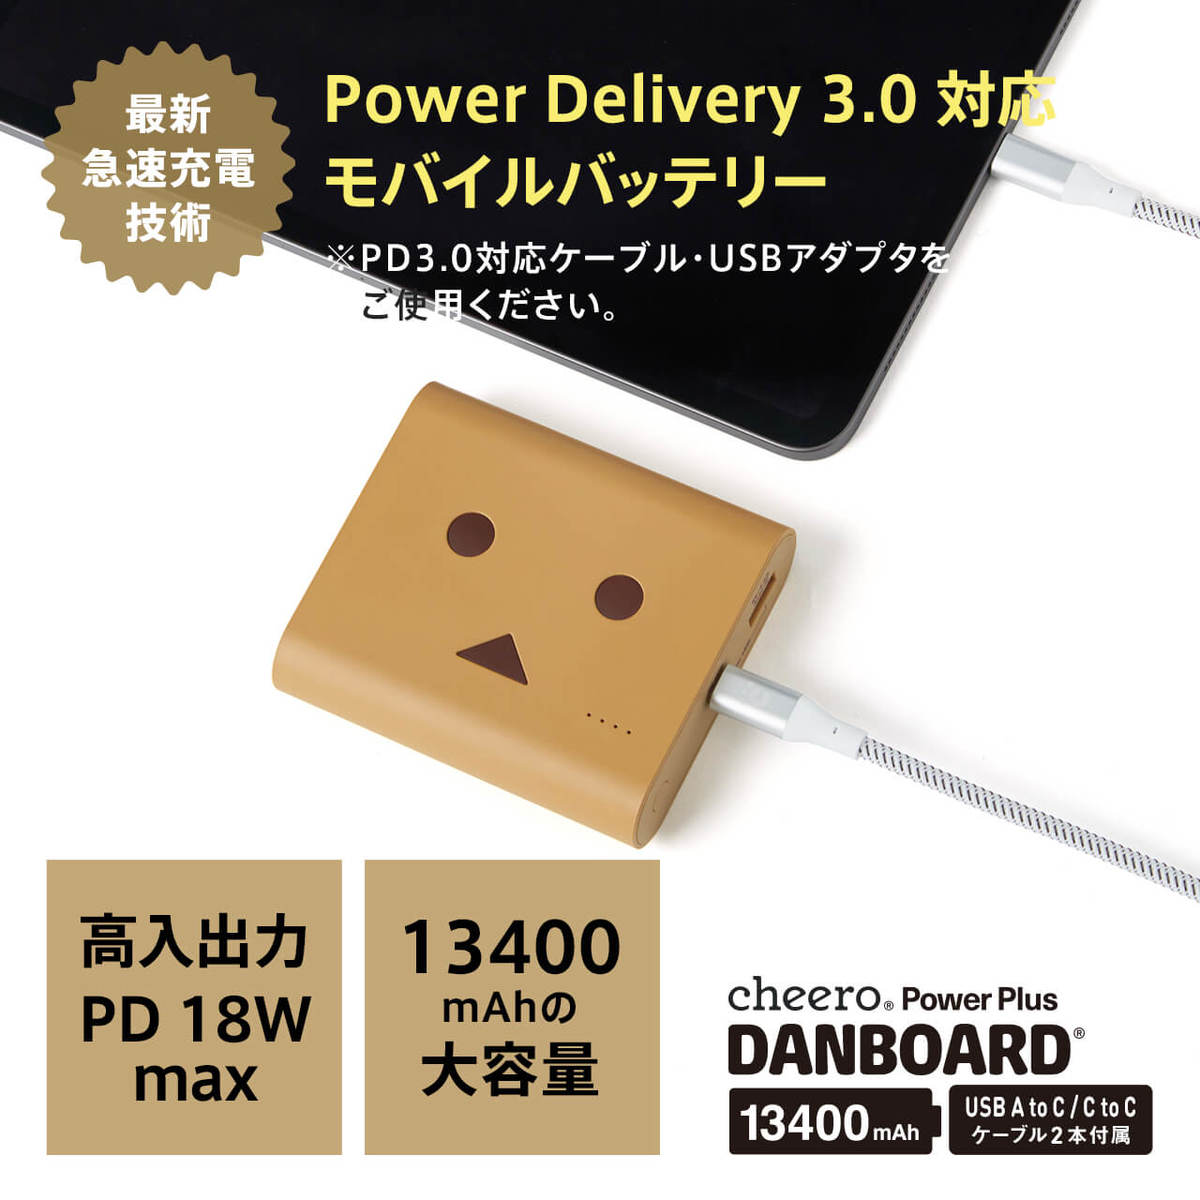 Danboard PD18W 13400mAh powerbank - DANBOARD colour (brand new series with PD3.0)